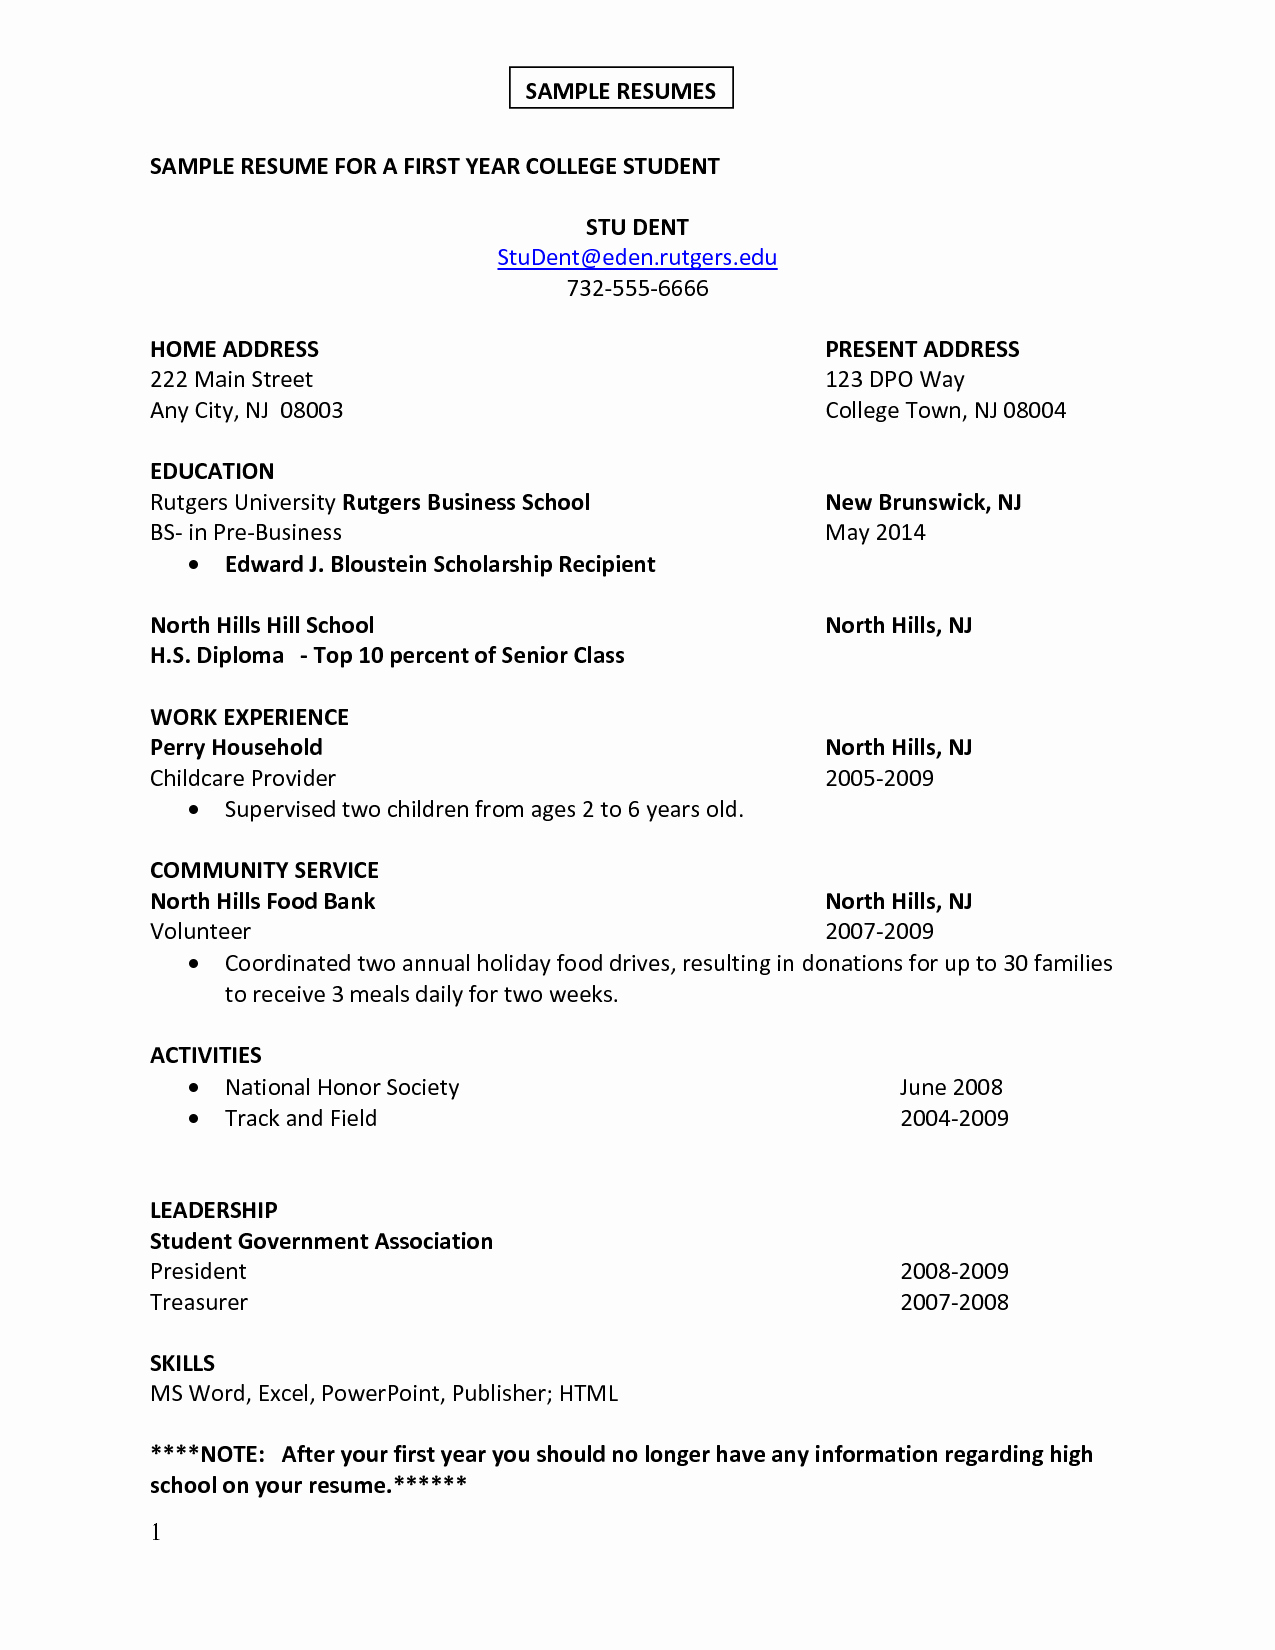 College Student Resume Best Template Collection